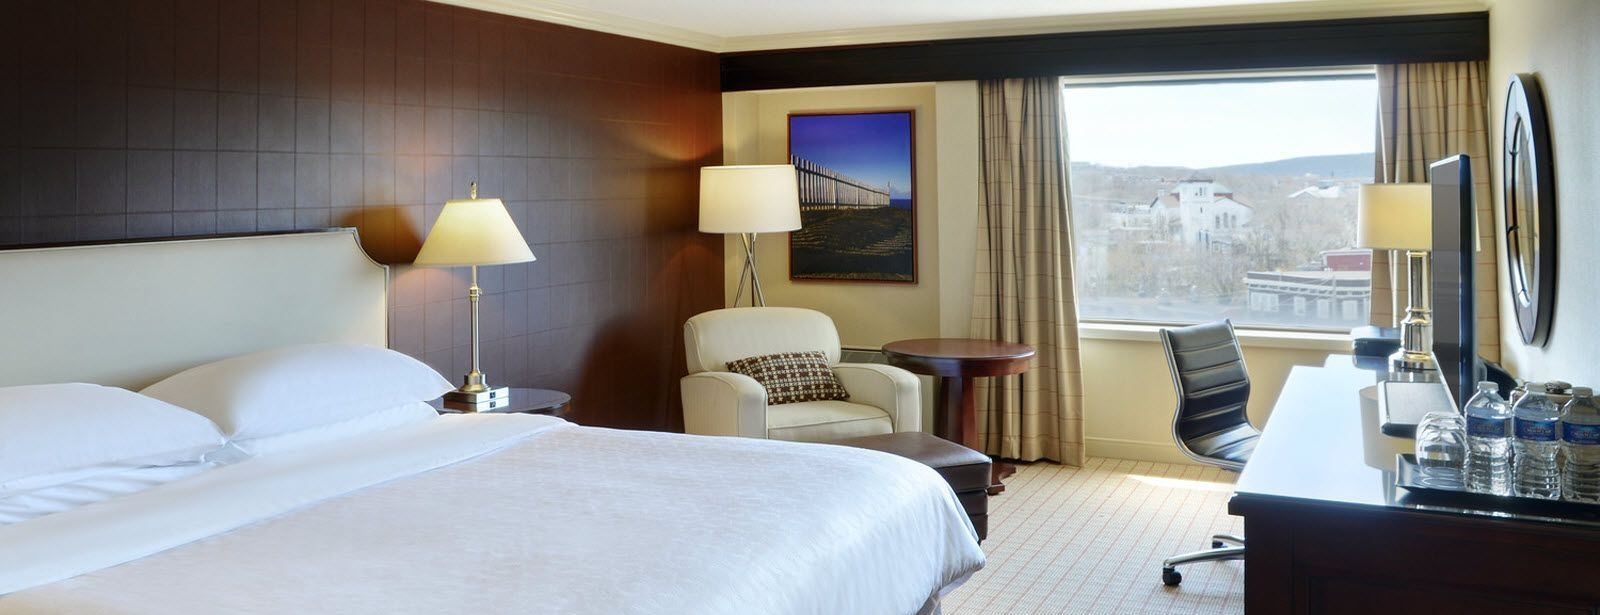 Sheraton Hotel Newfoundland Accommocations - Traditional King Guest Room